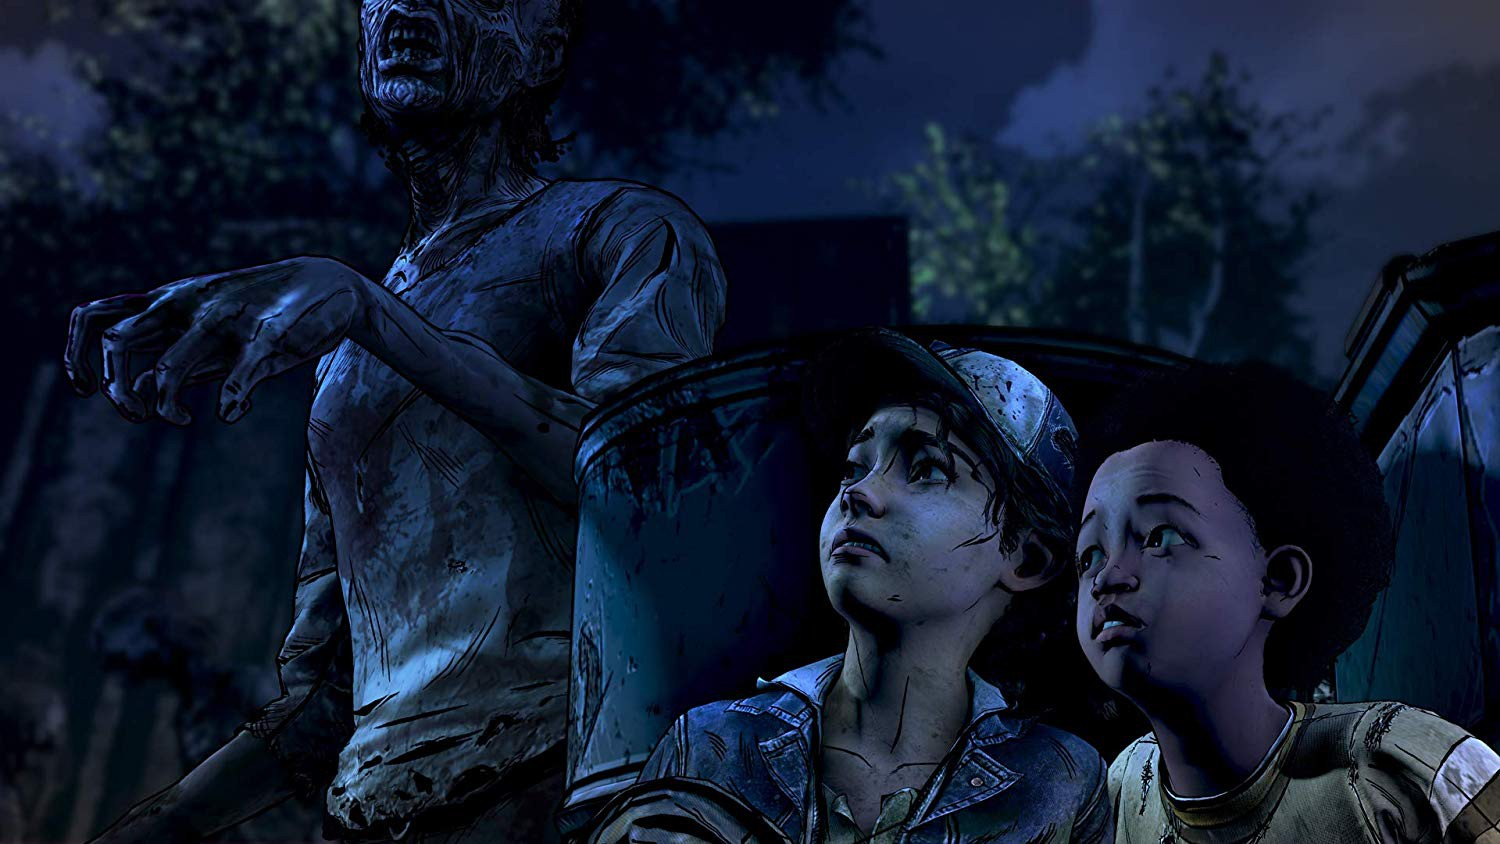 Telltale's The Walking Dead: The Final Season